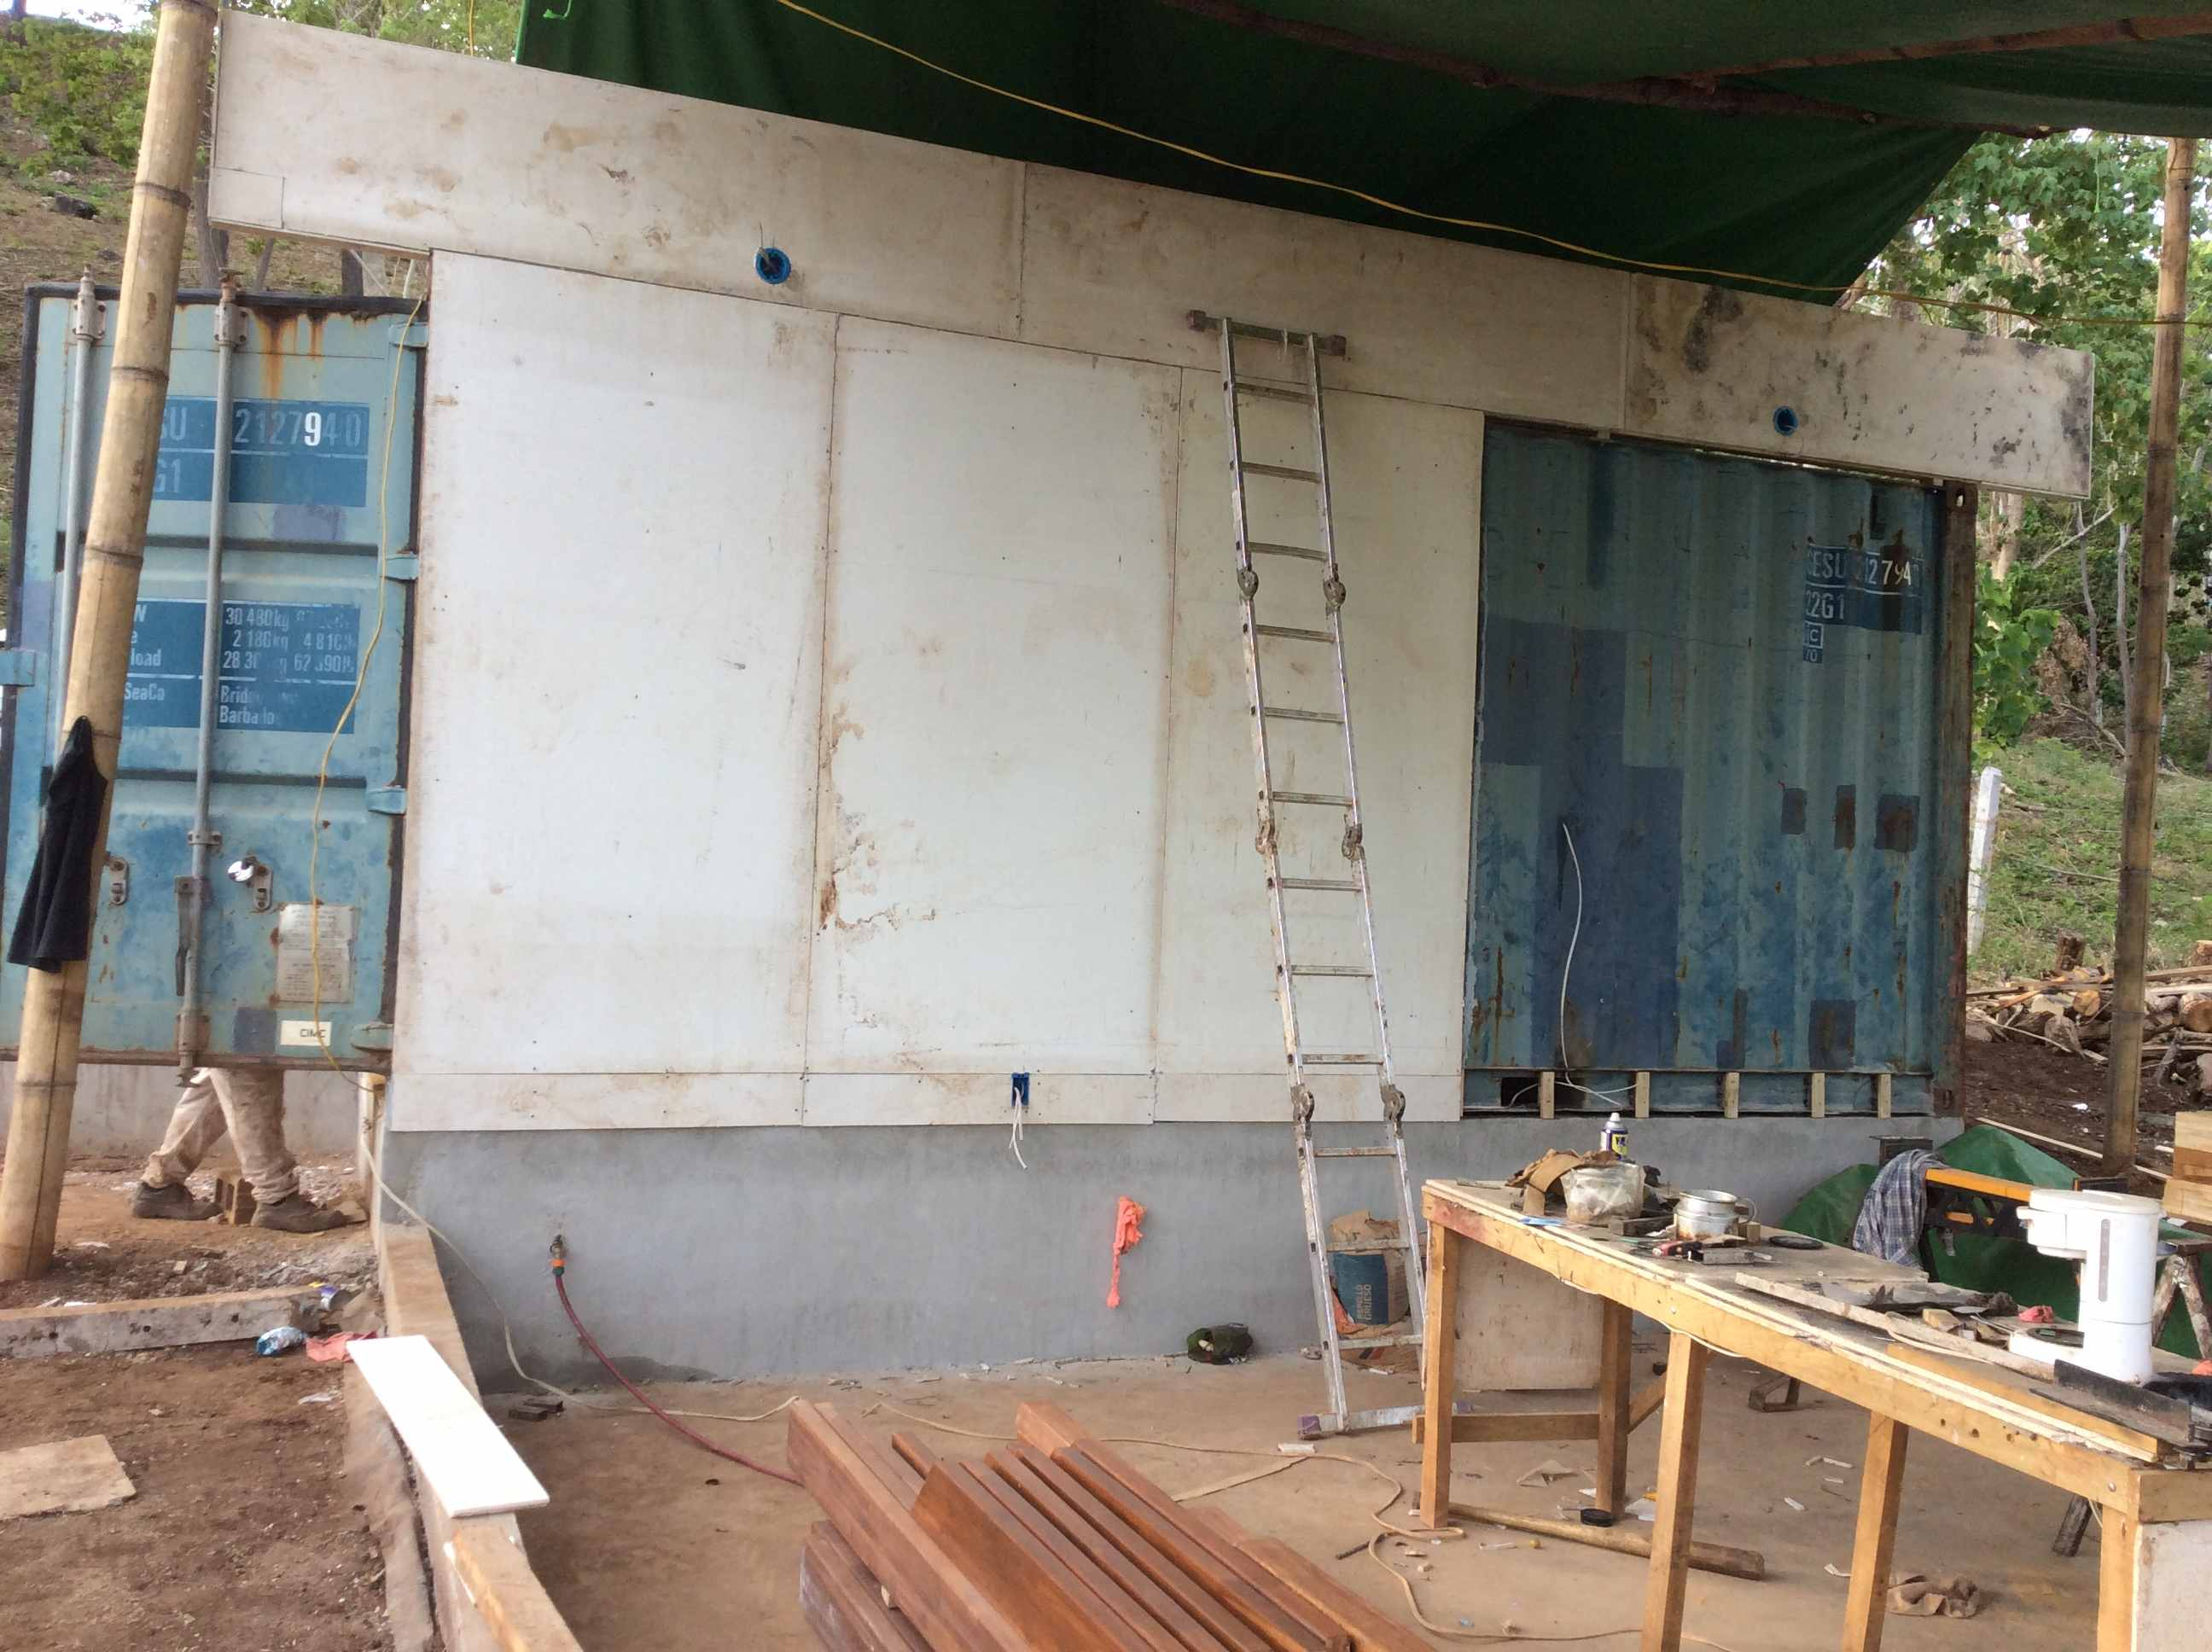 Container sheeting